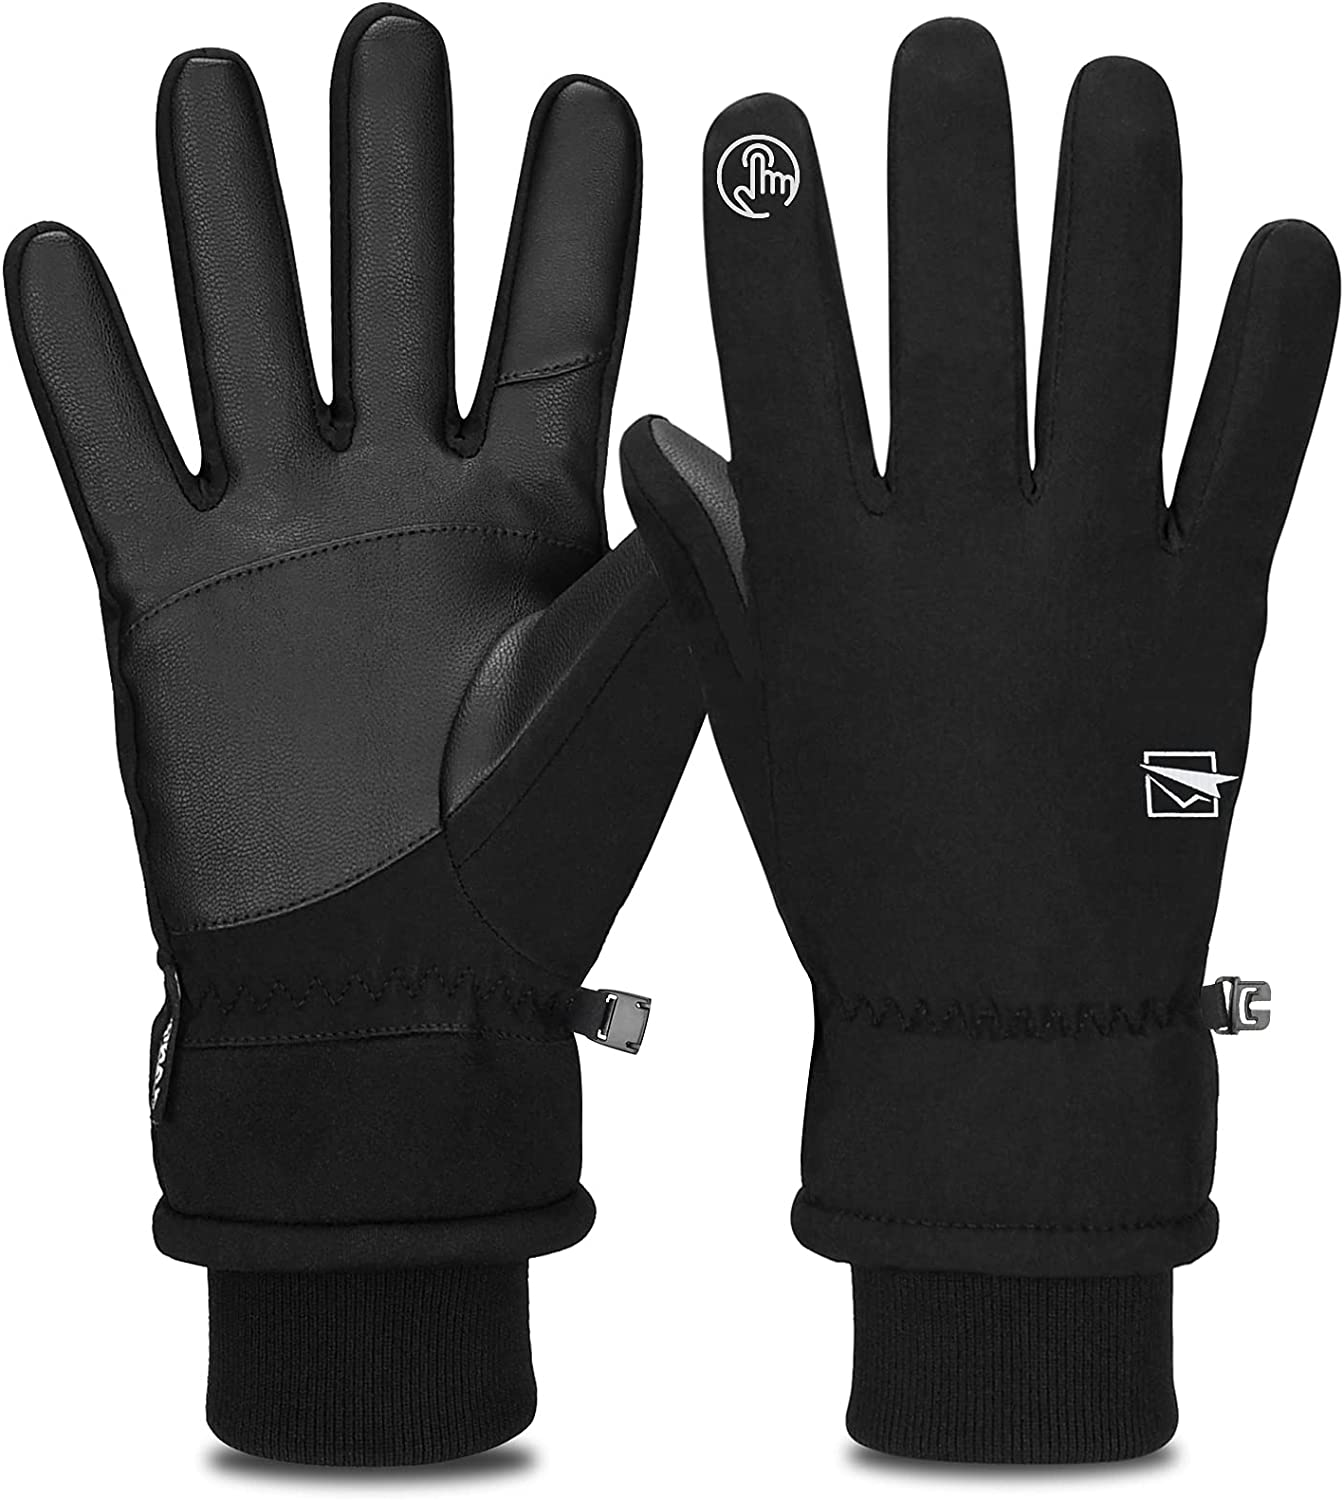 COMENOLE Winter Gloves, -30°F Cold Weather Gloves Touch Screen Thermal Gloves Windproof Warm Gloves Men Women